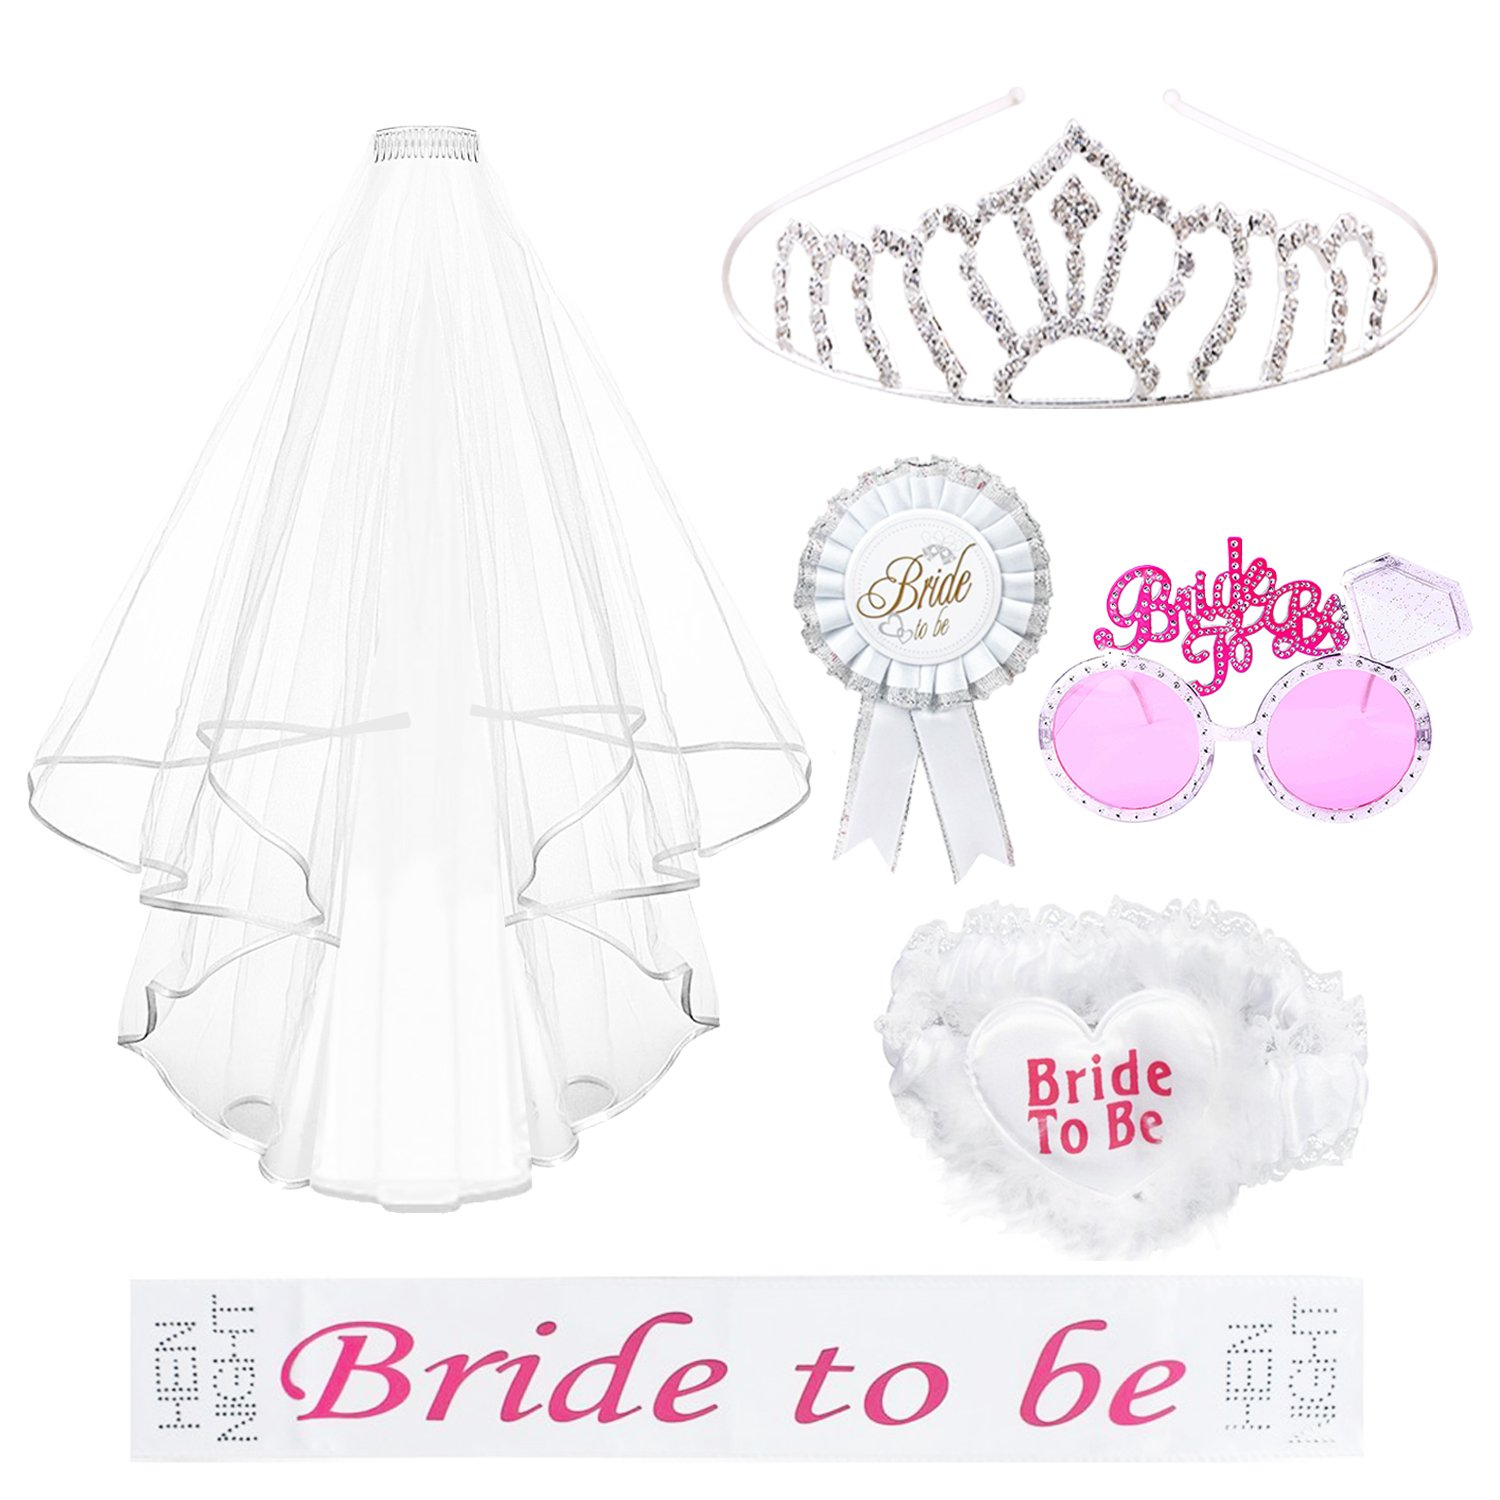 REVEW 6PCS Bride to Be Decorations Kit for Bachelorette Party Including Bride to Be Sash, Bridal Veil, Rosette Badge, Bride to Be Garter, Rhinestone Tiara, Funny Sunglasses Bachelorette Party (White)